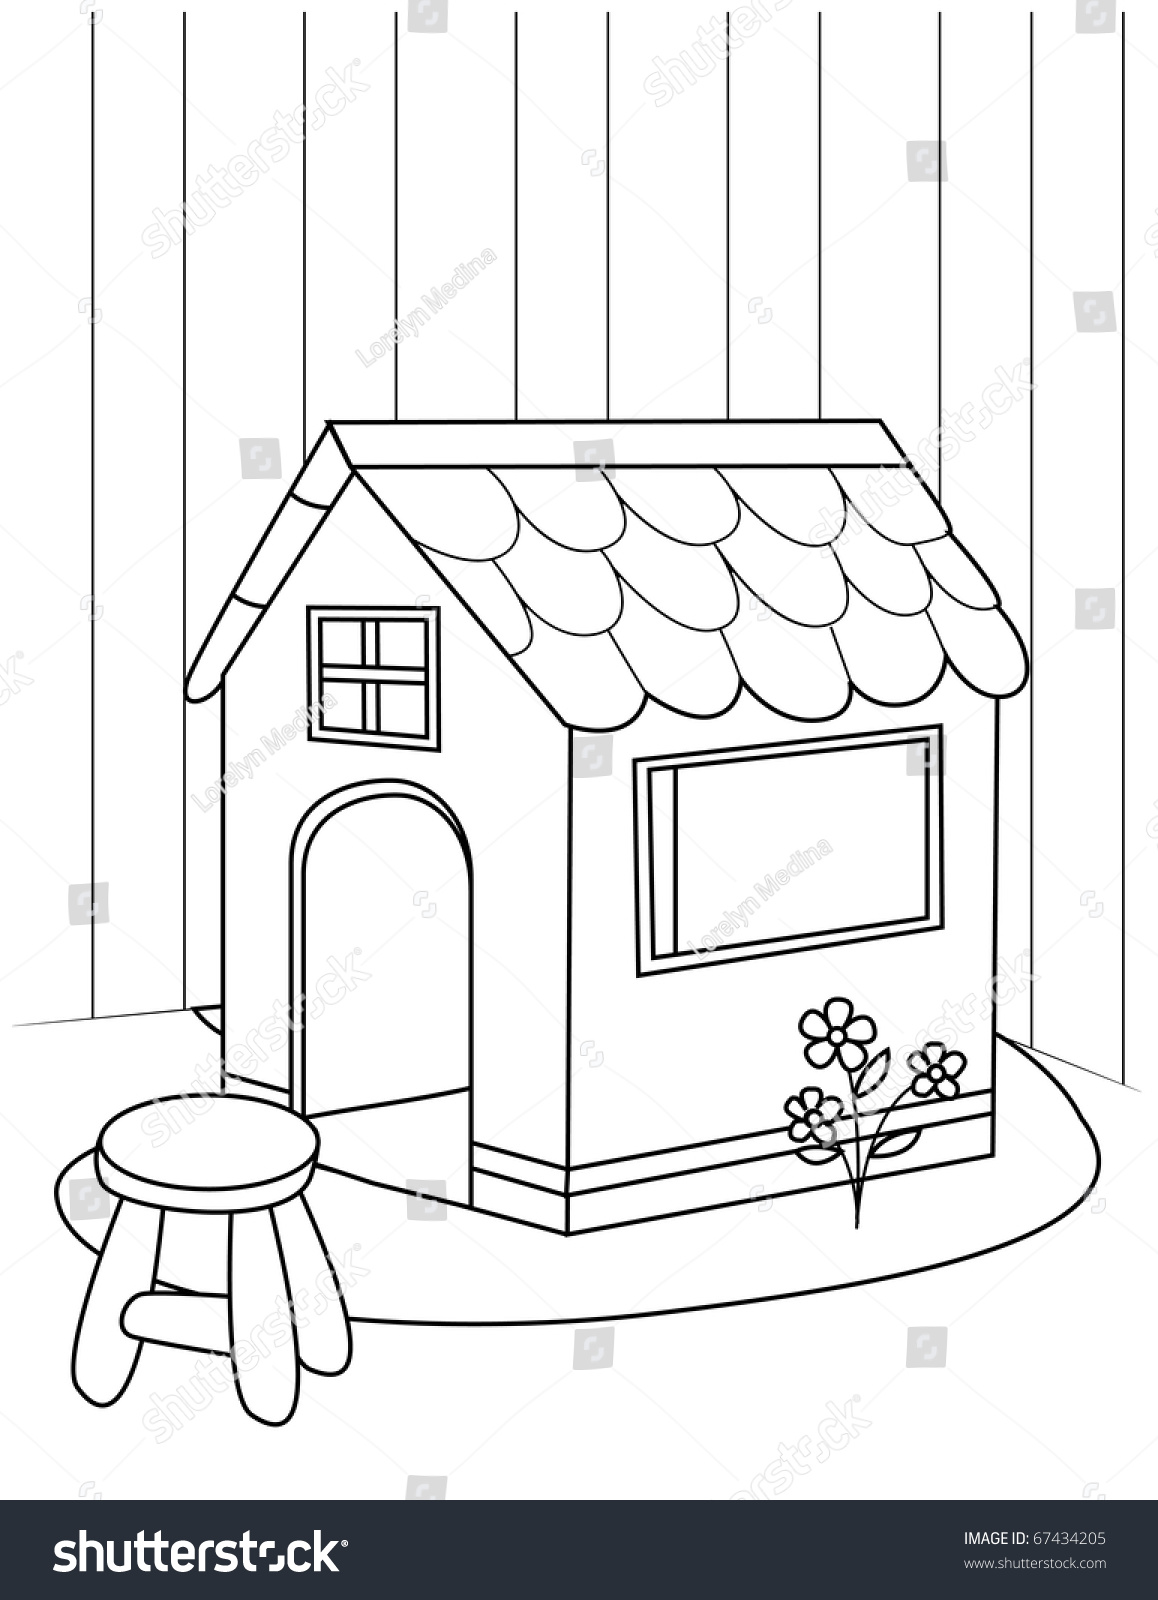 Line Art Illustration Playhouse Coloring Page Stock Vector (Royalty ...